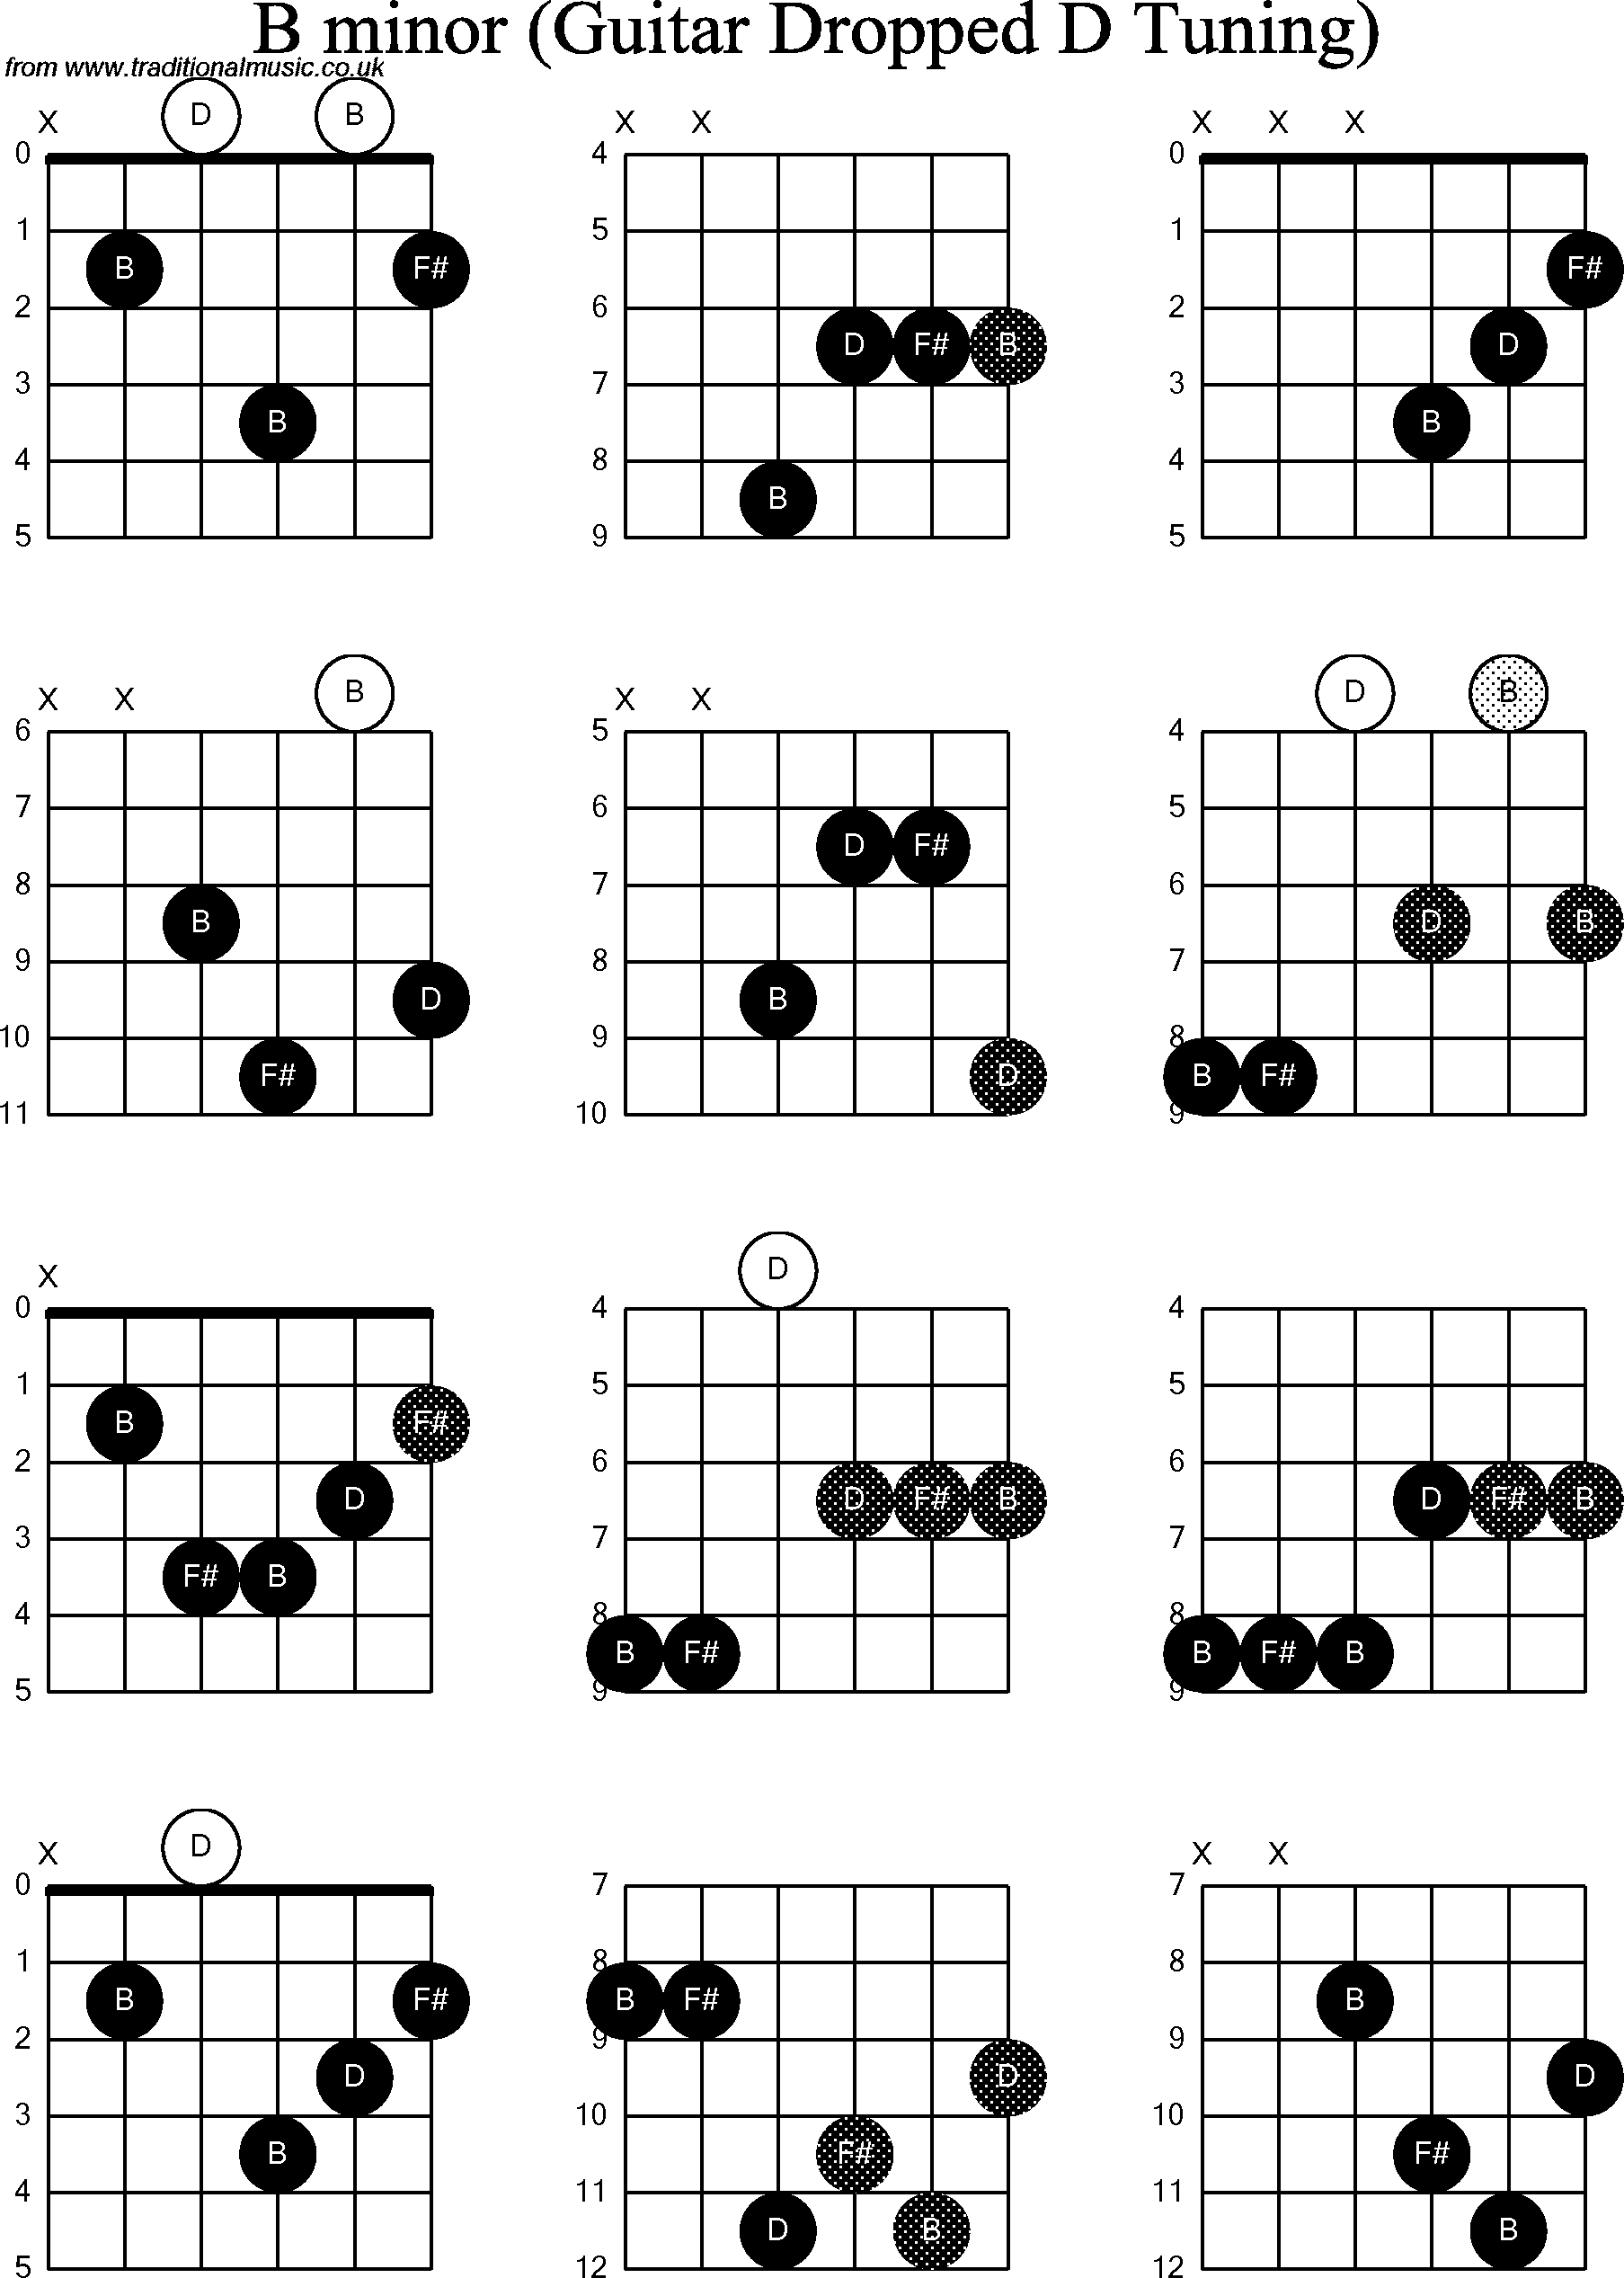 B Minor Guitar Chord Chord Diagrams For Dropped D Guitardadgbe B Minor